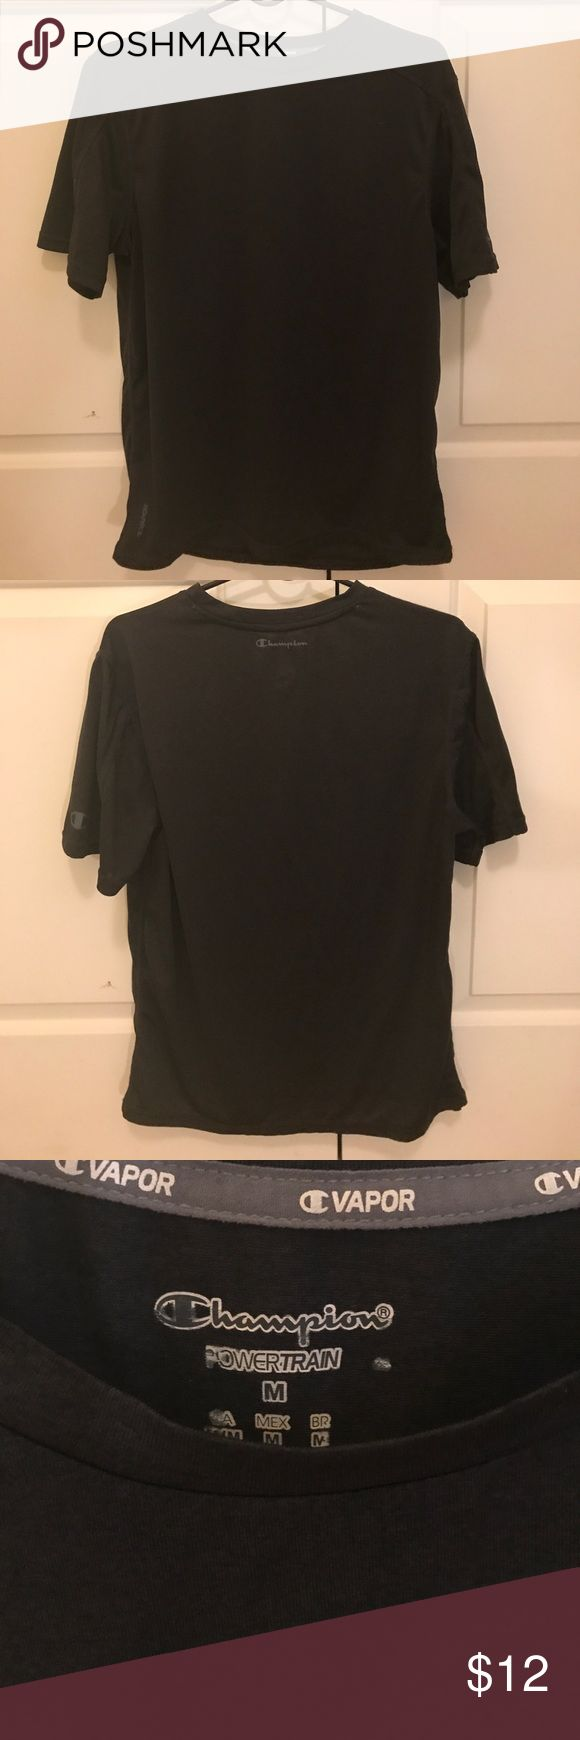 NEW LISTING Champion Men's Workout Shirt A black, men's workout shirt in a size medium. Like new condition! Worn once! Champion Shirts Tees - Short Sleeve